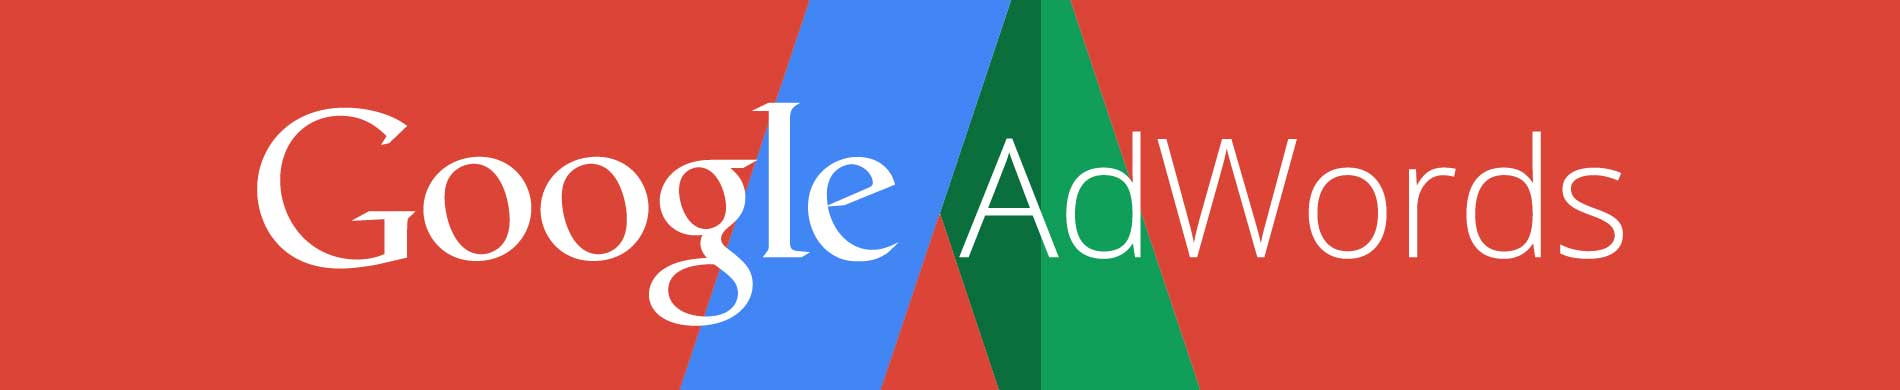 Bay Area Adwords Paid Search Marketing